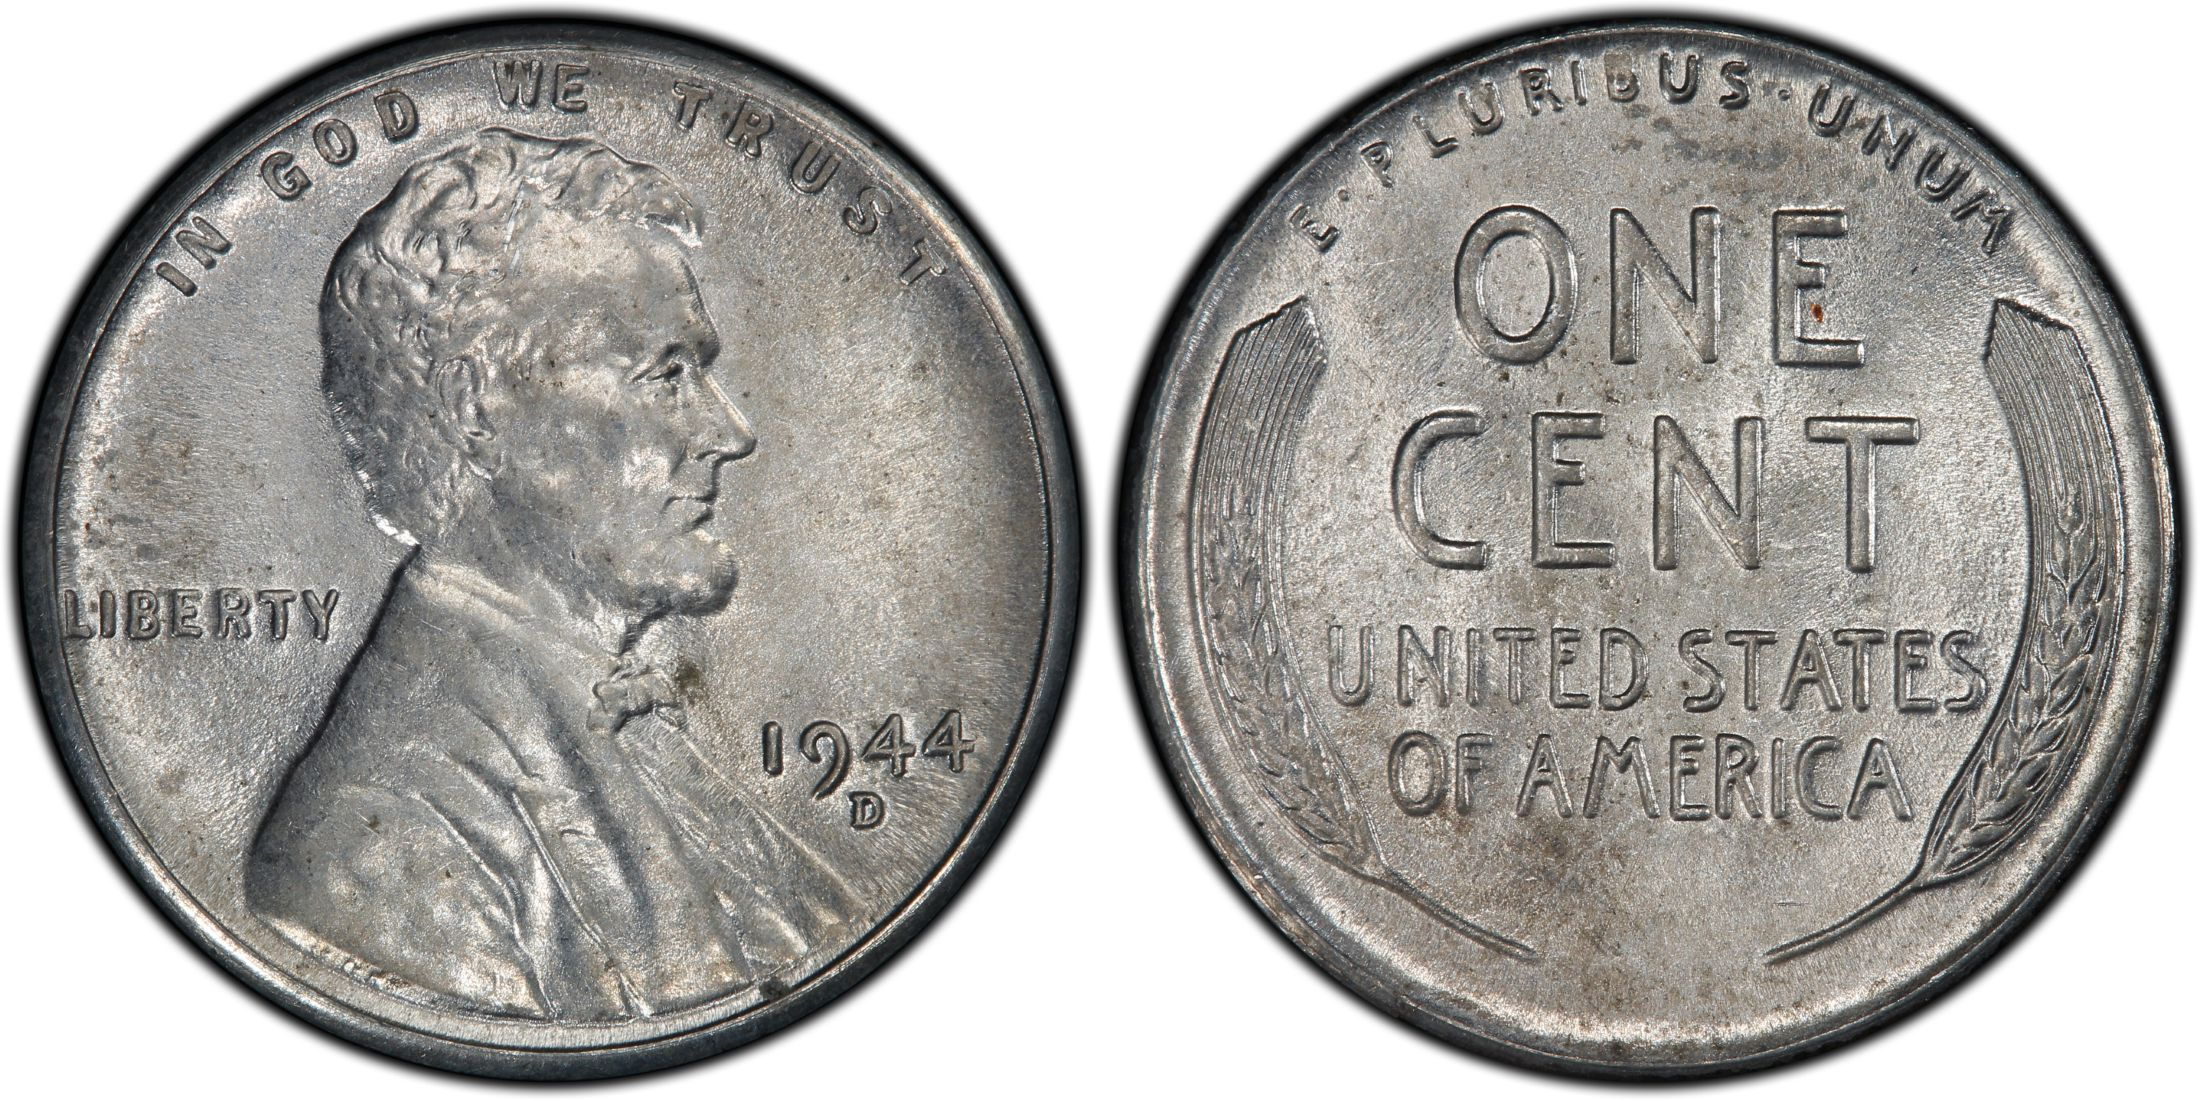 The Elusive 1944 Steel Penny Buy Gold Amp Silver Online